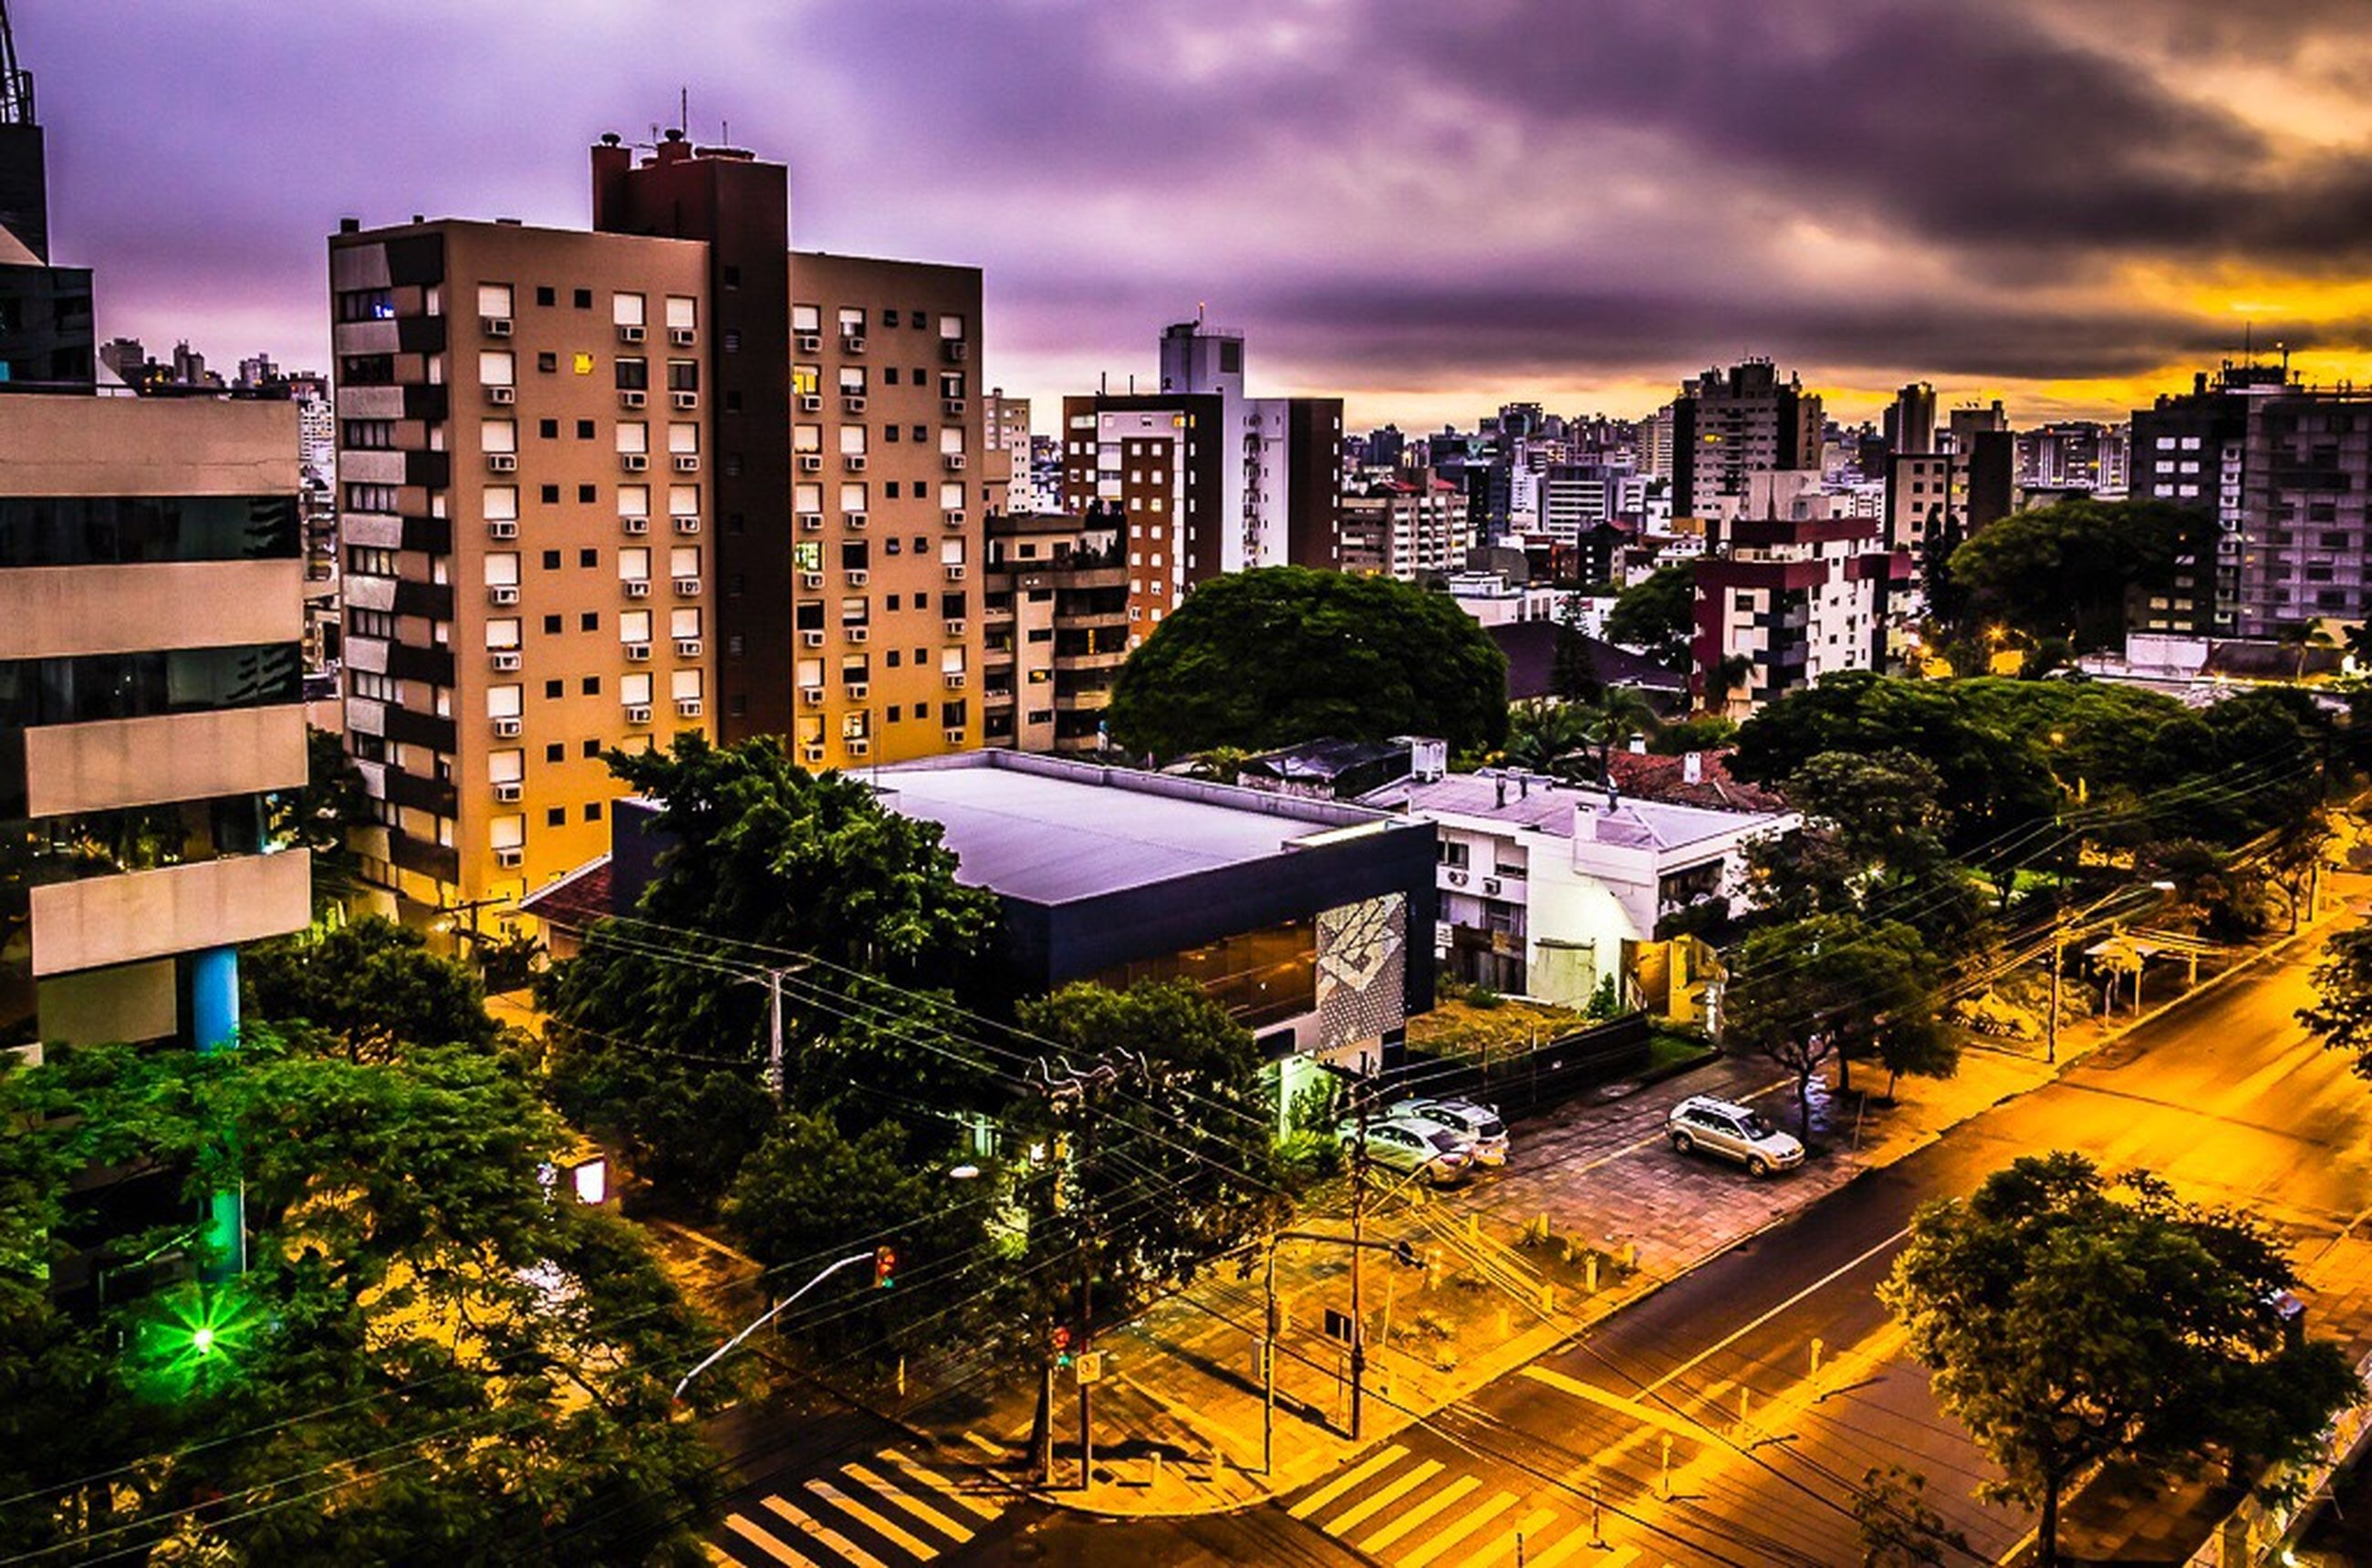 building exterior, city, architecture, built structure, tree, skyscraper, modern, dusk, cityscape, growth, business finance and industry, tower, sky, outdoors, city life, no people, sunset, apartment, illuminated, urban skyline, dramatic sky, cloud - sky, night, building story